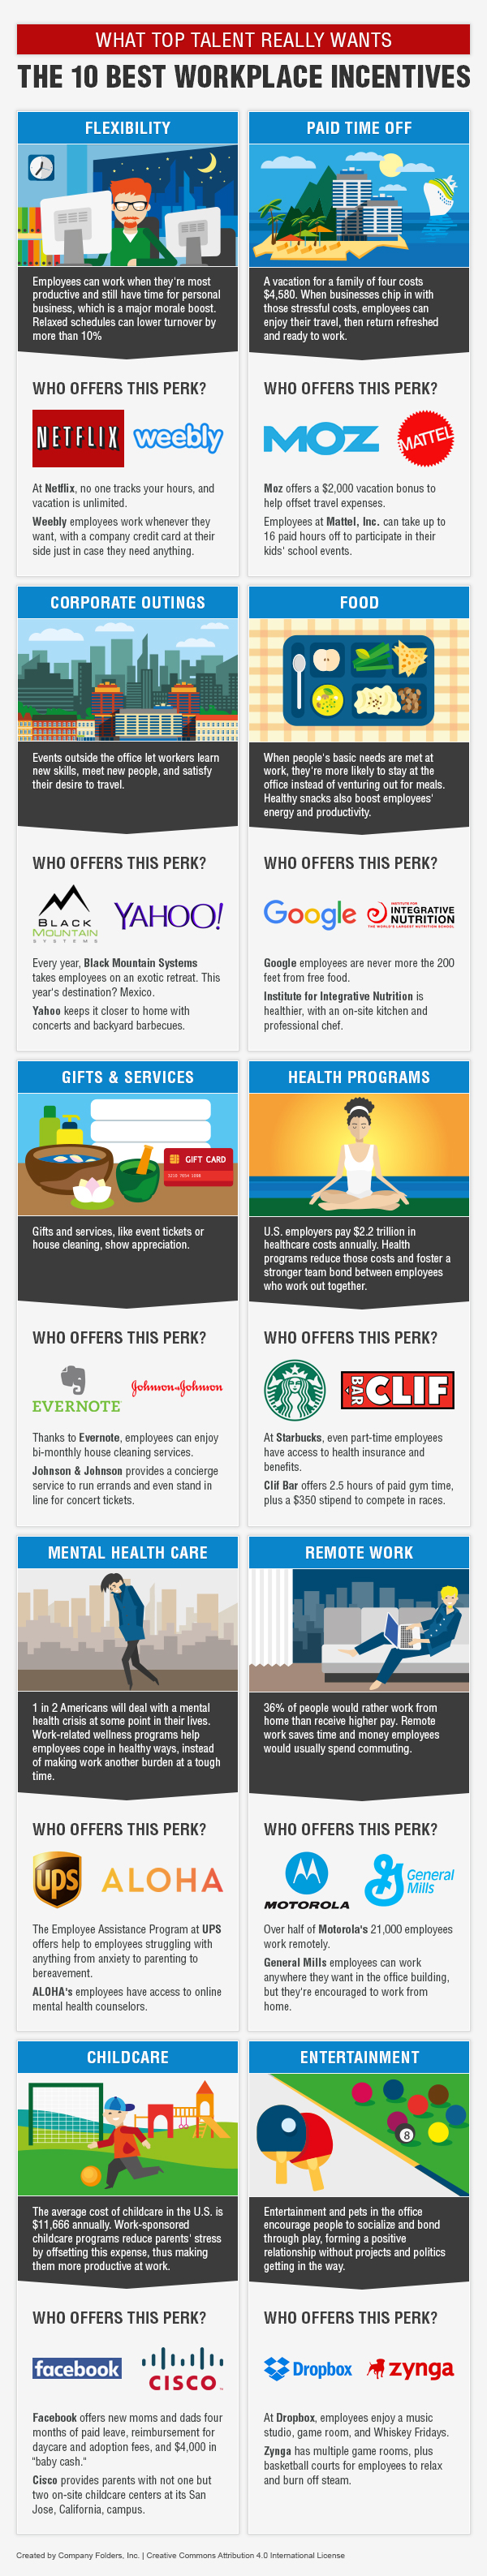 10 Employee Perks To Attract Top Talent- Infographic